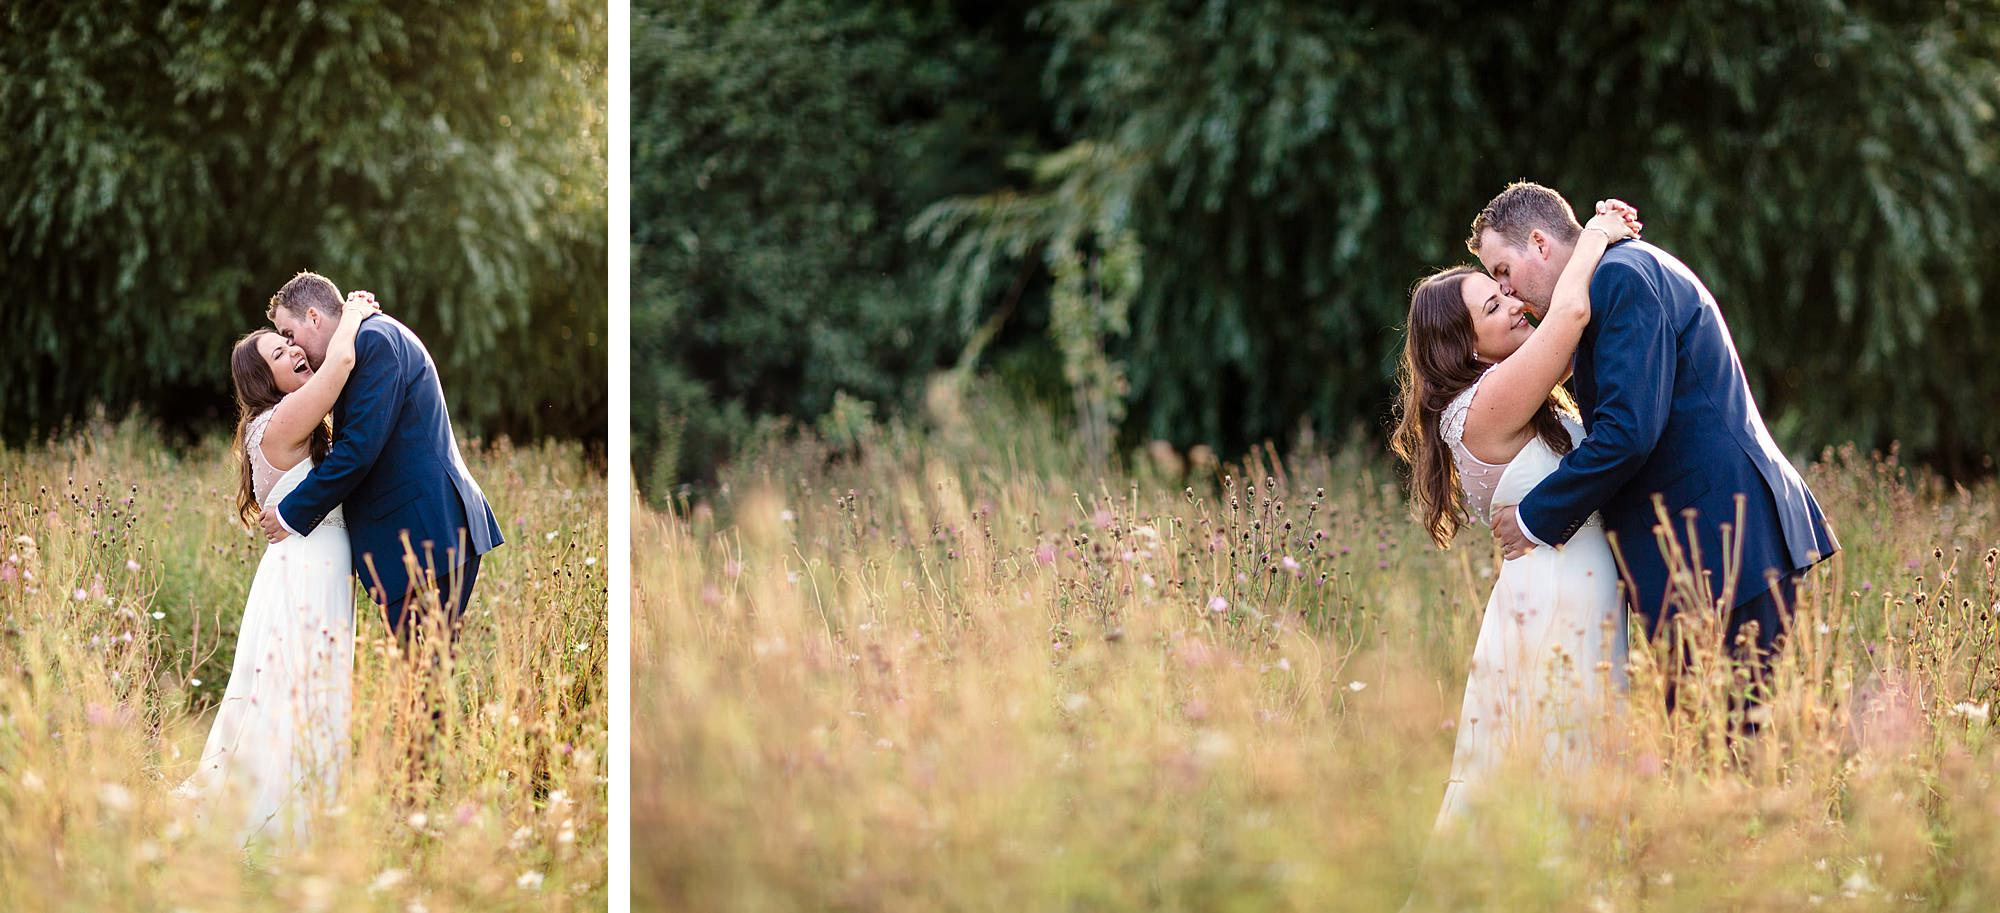 fun outdoor wedding bride and groom in wild grass